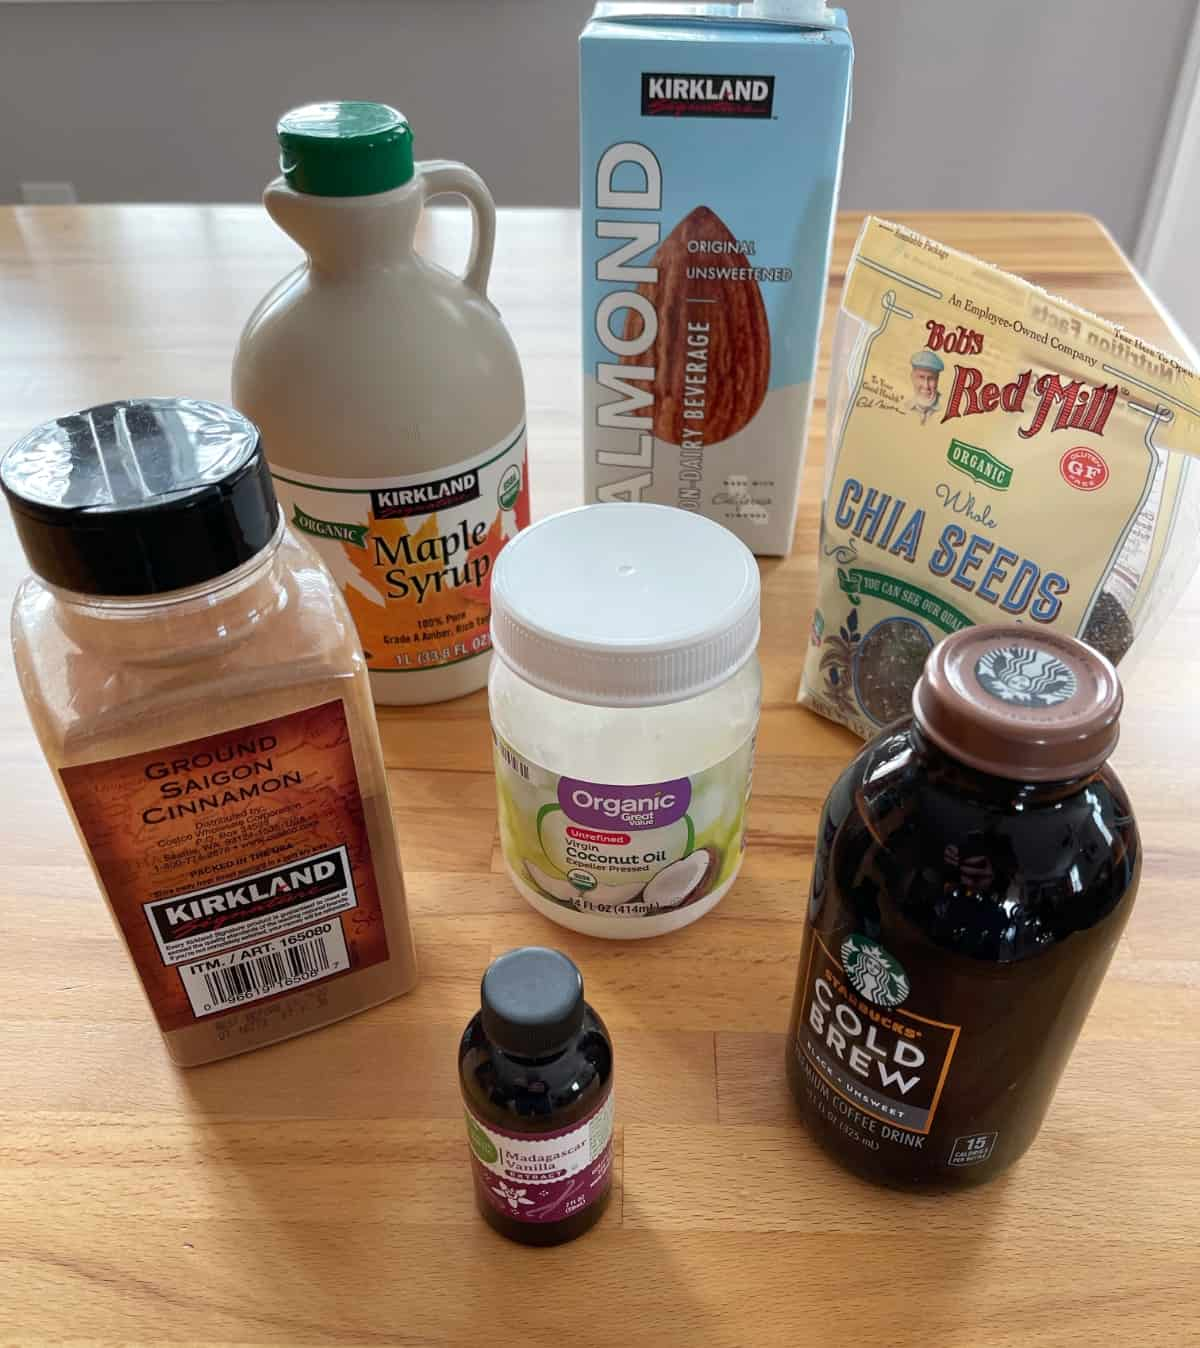 Ingredients for making chia pudding including almond milk, cold brew coffee, cinnamon, chia seeds and maple syrup.